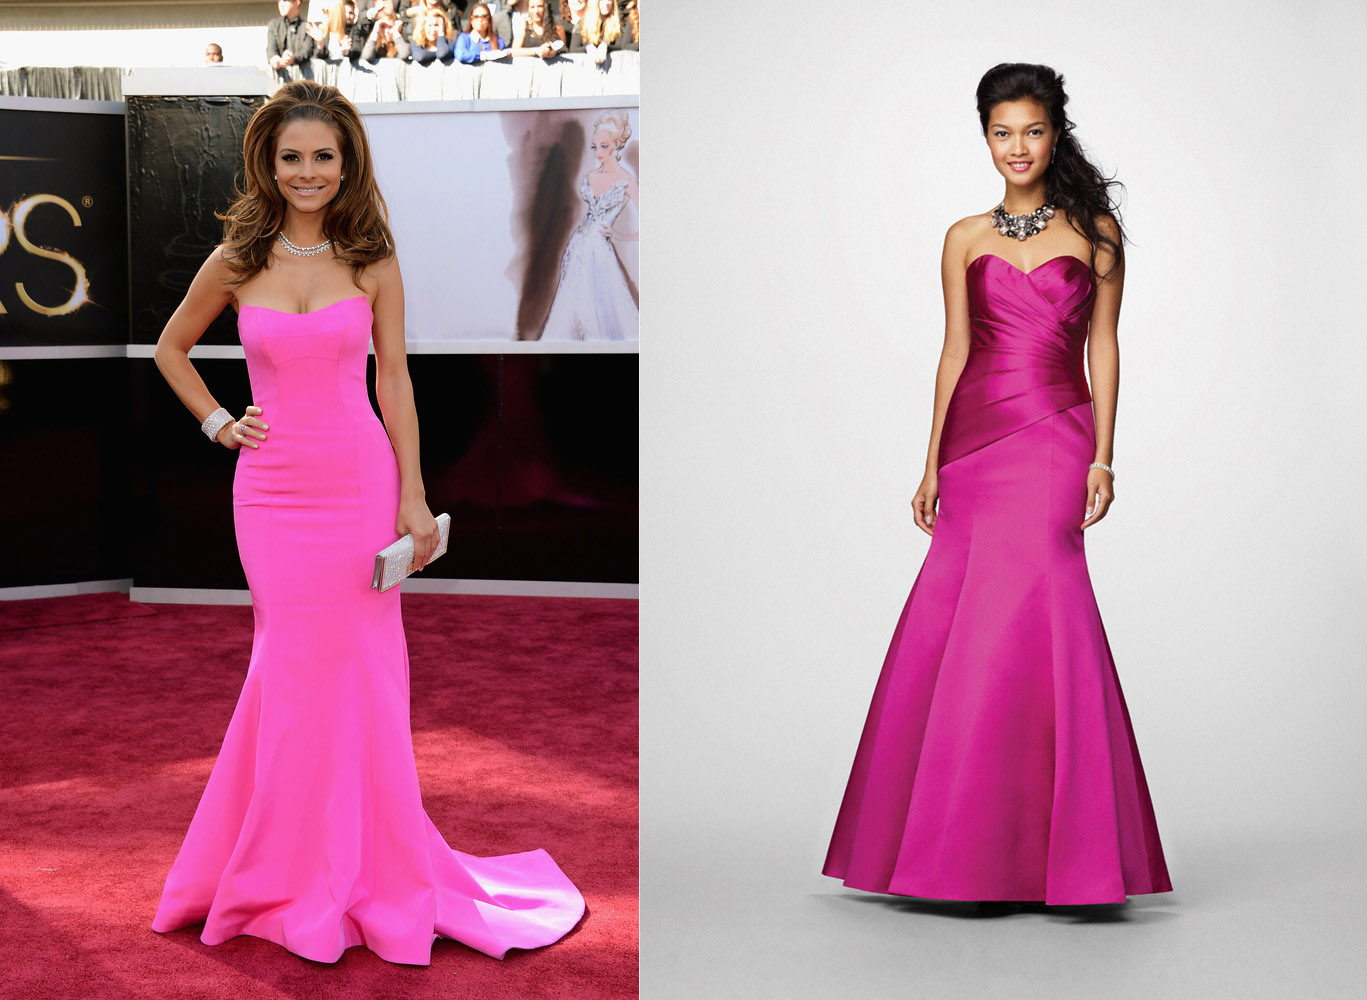 Tj formal dress blog february 2013 and simple but elegant bright pink mermaid style is worn by maria menounos this alfred angelo bridesmaids dress 7168 is our match ombrellifo Images